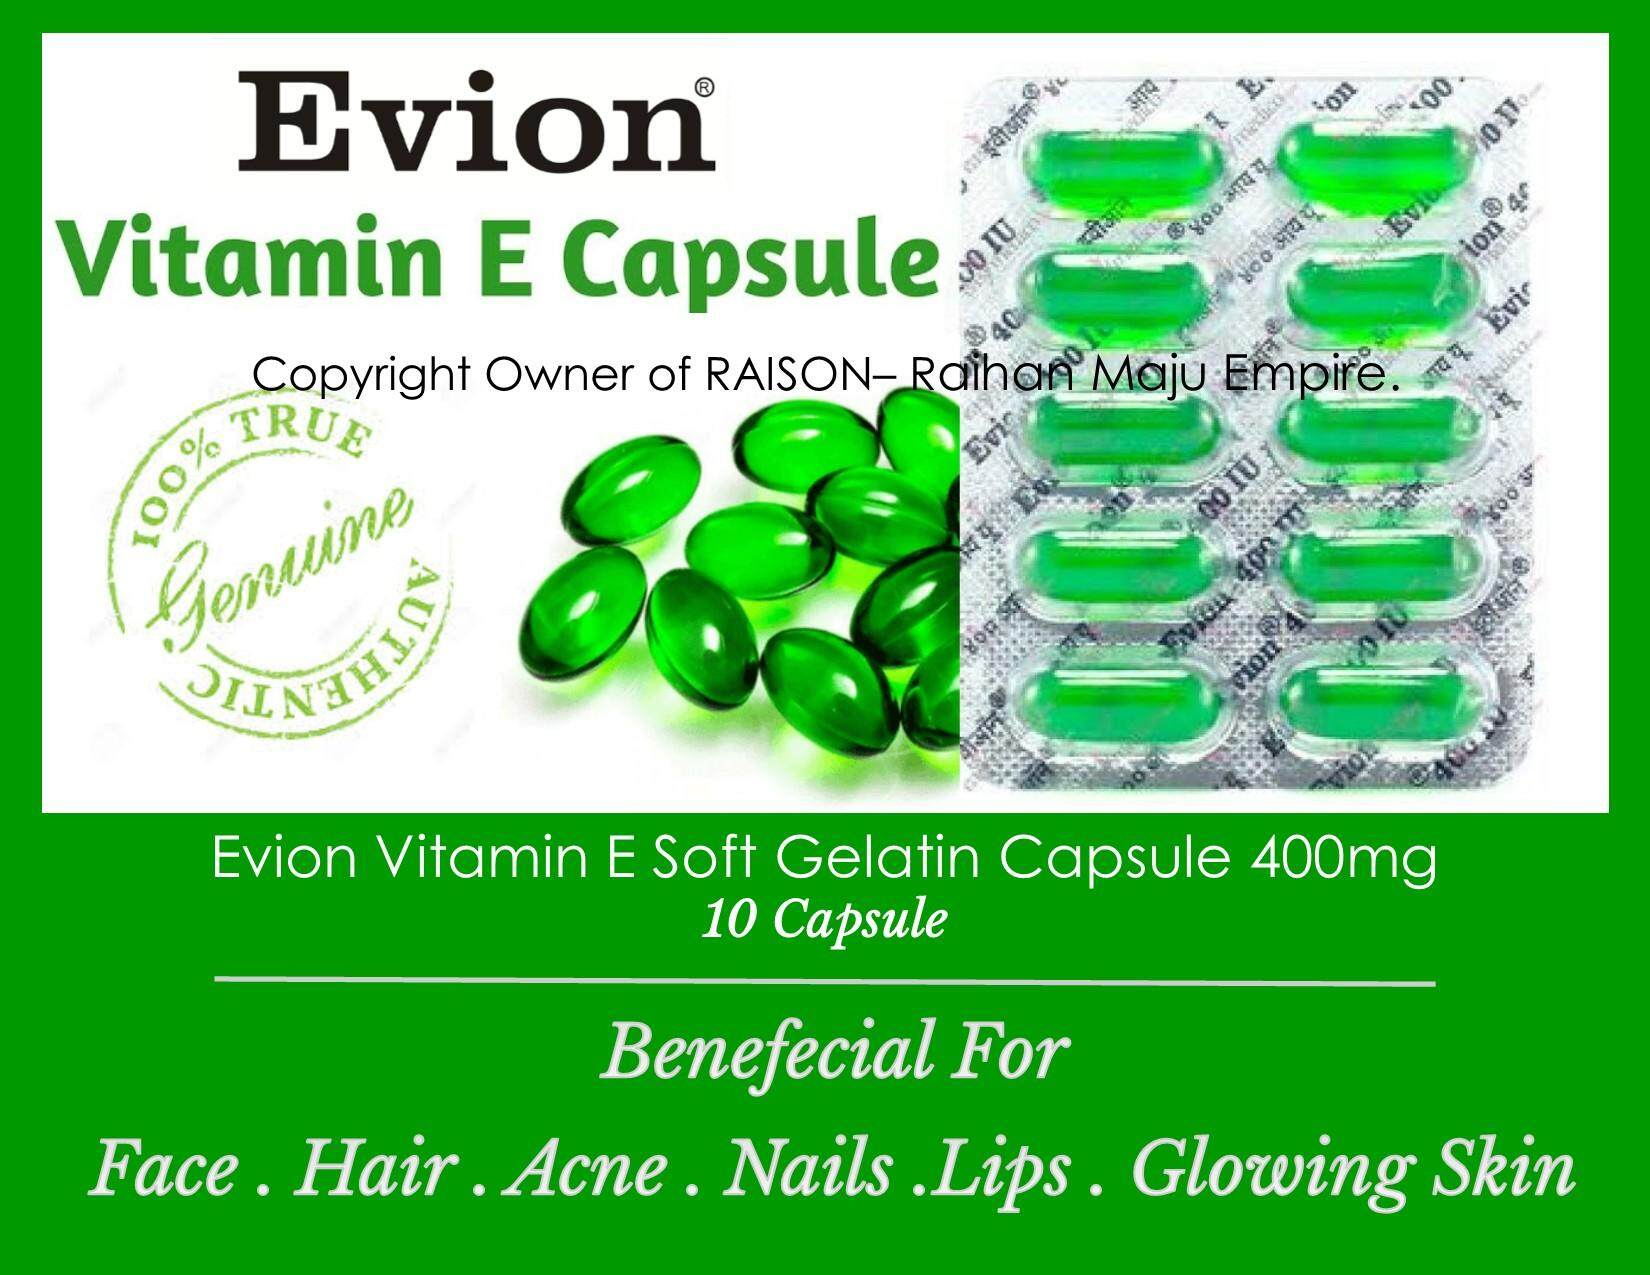 Evion Vitamin E 400mg - 10 Capsule External Use By Raison- Raihan Maju Empire.